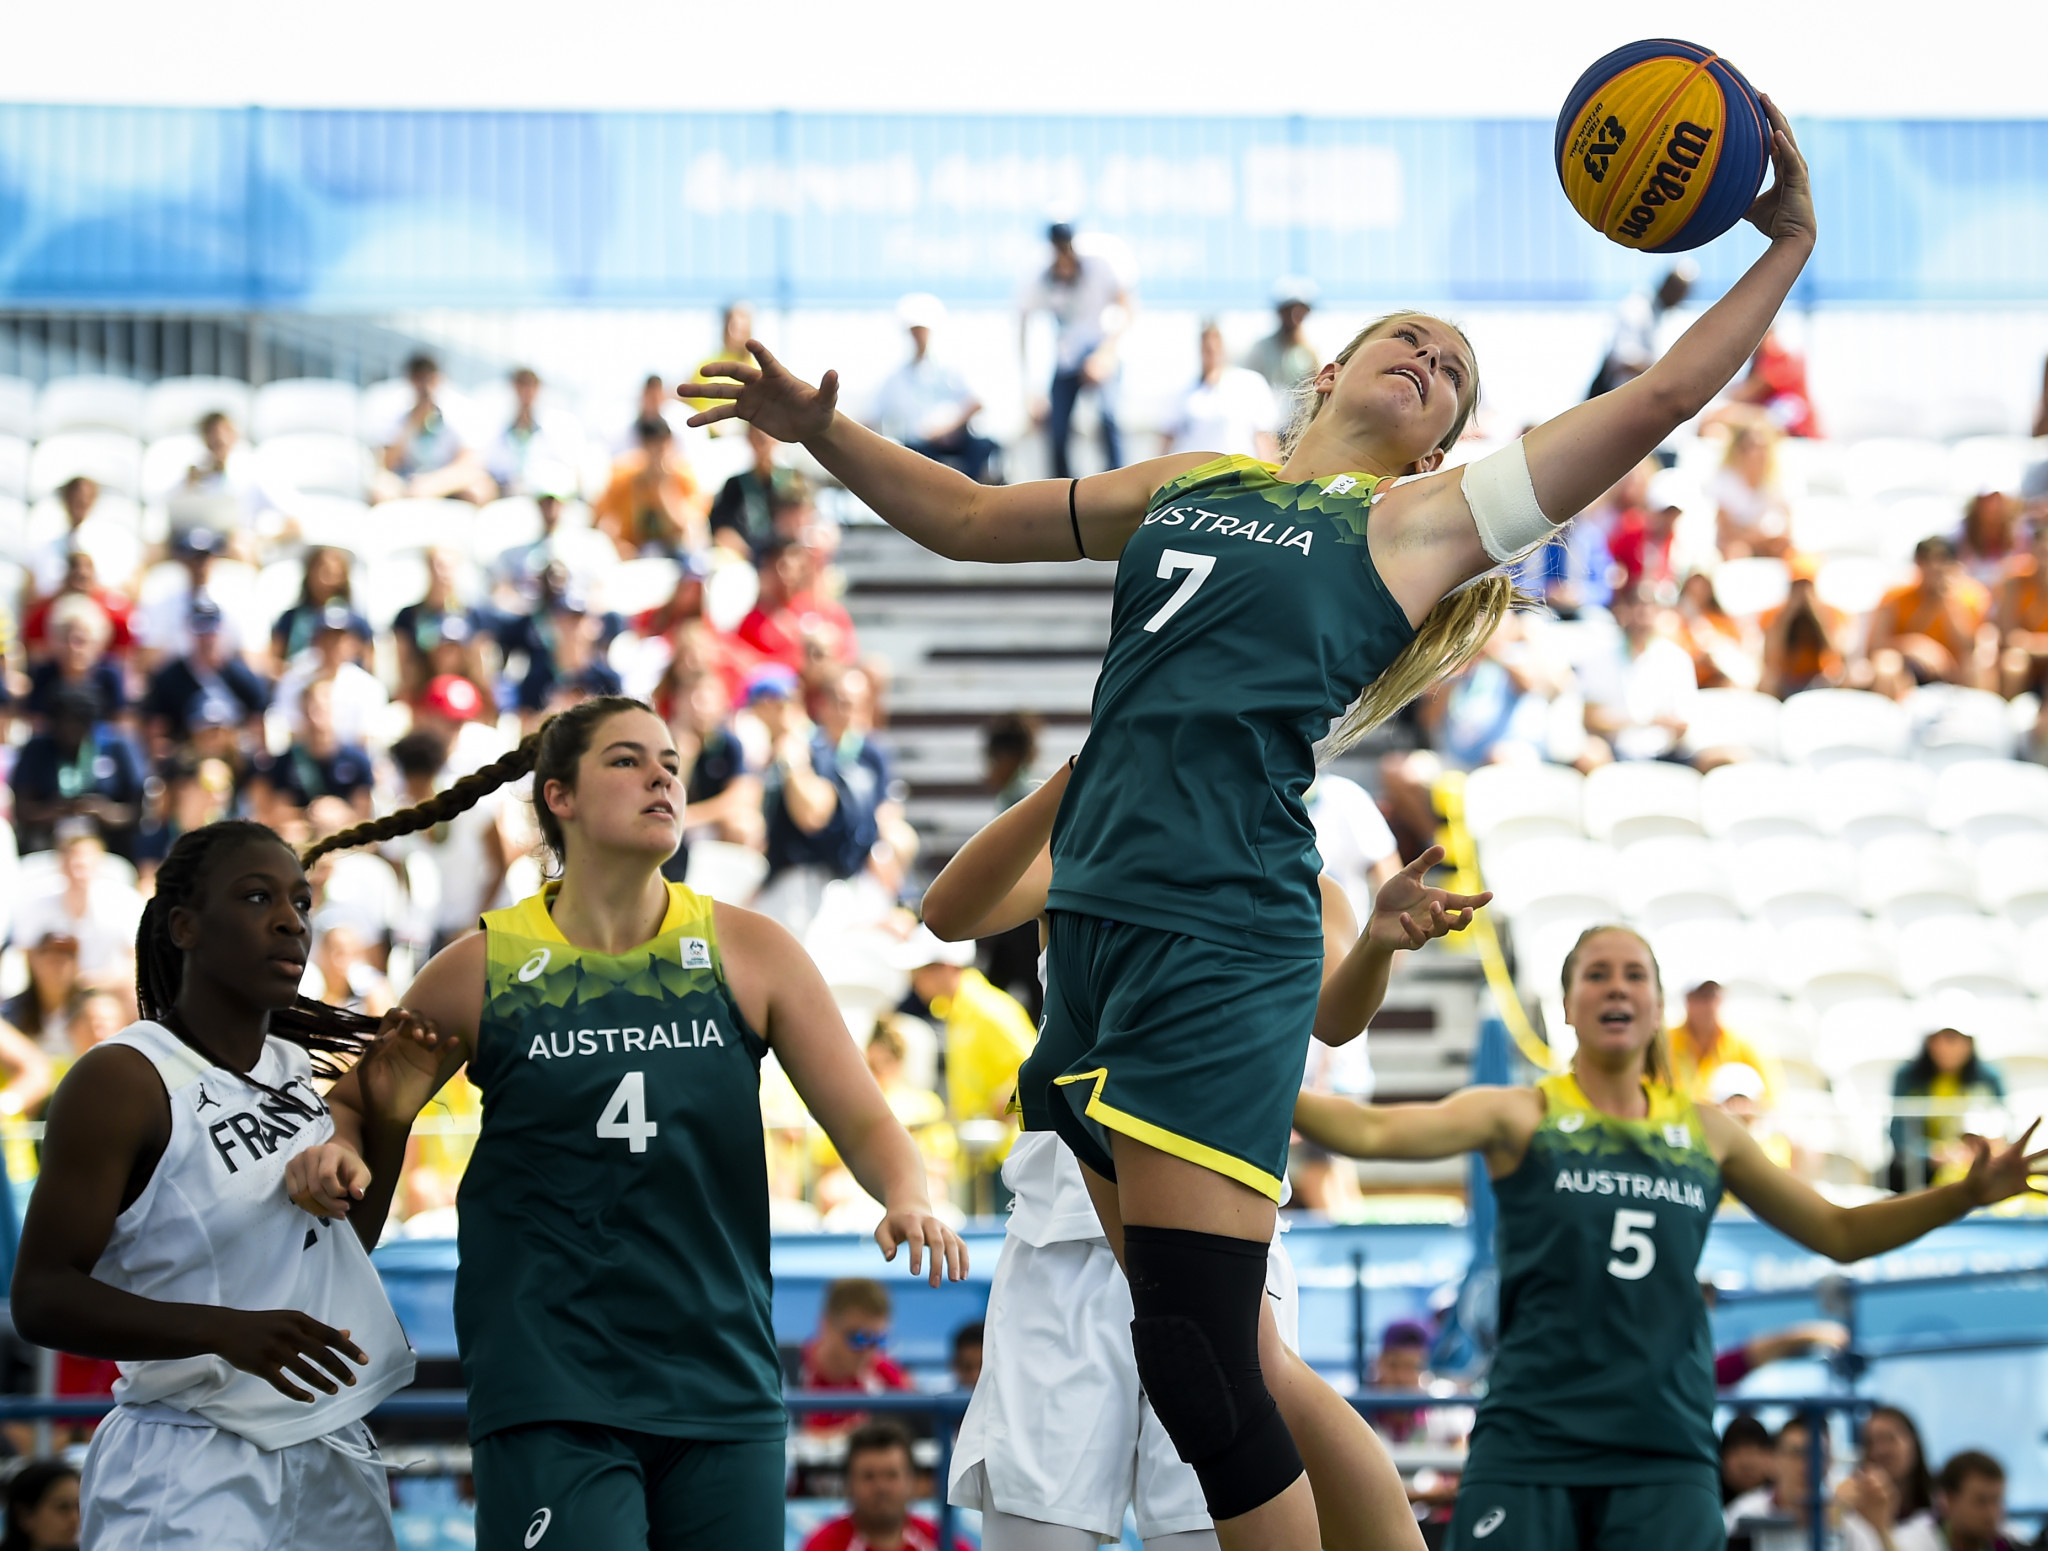 3x3 basketball featured at last year's Youth Olympic Games in Buenos Aires 2018 ©Getty Images